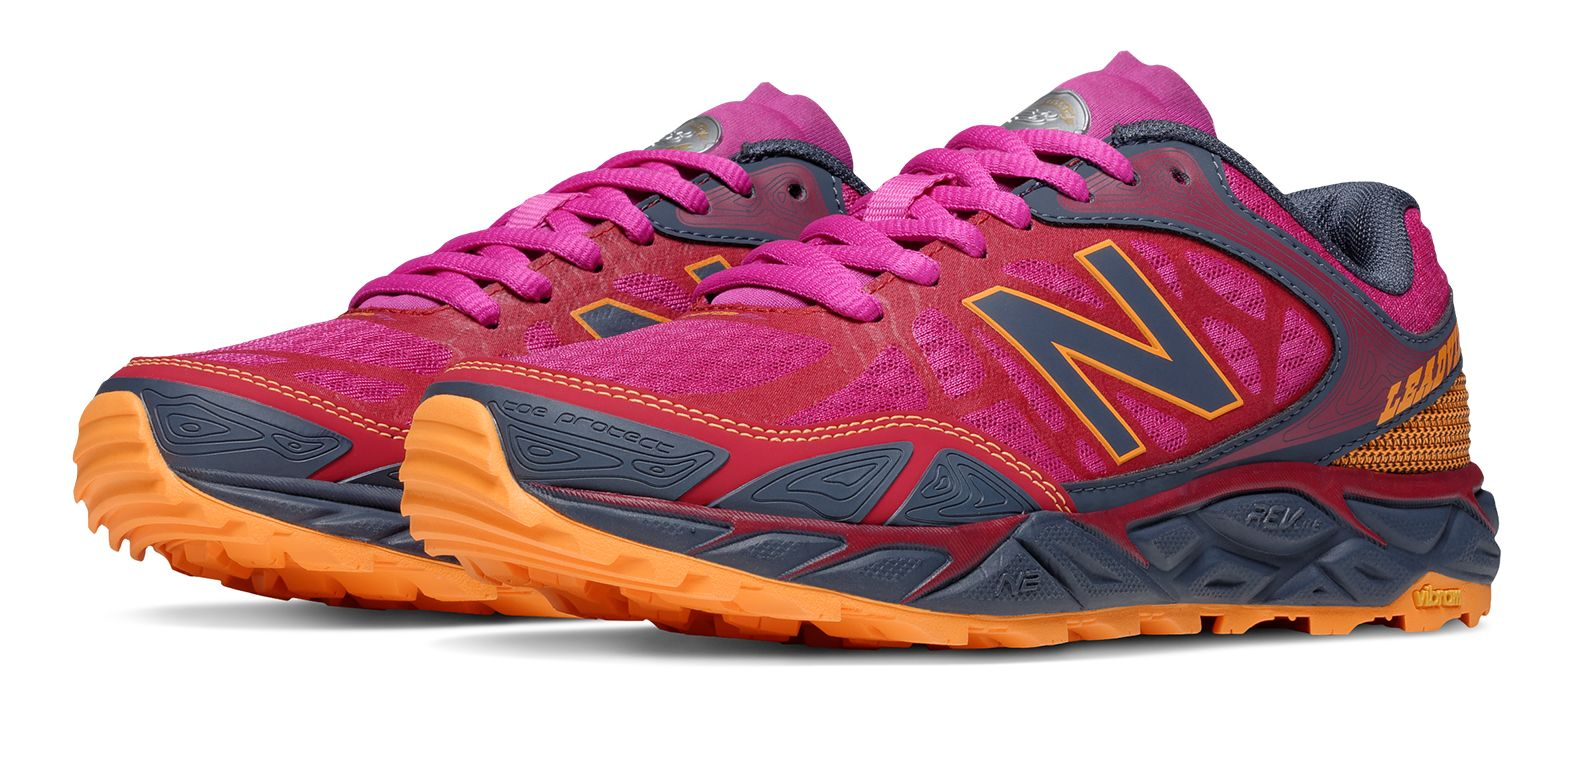 joes new balance outlet discount new balance boots for sale